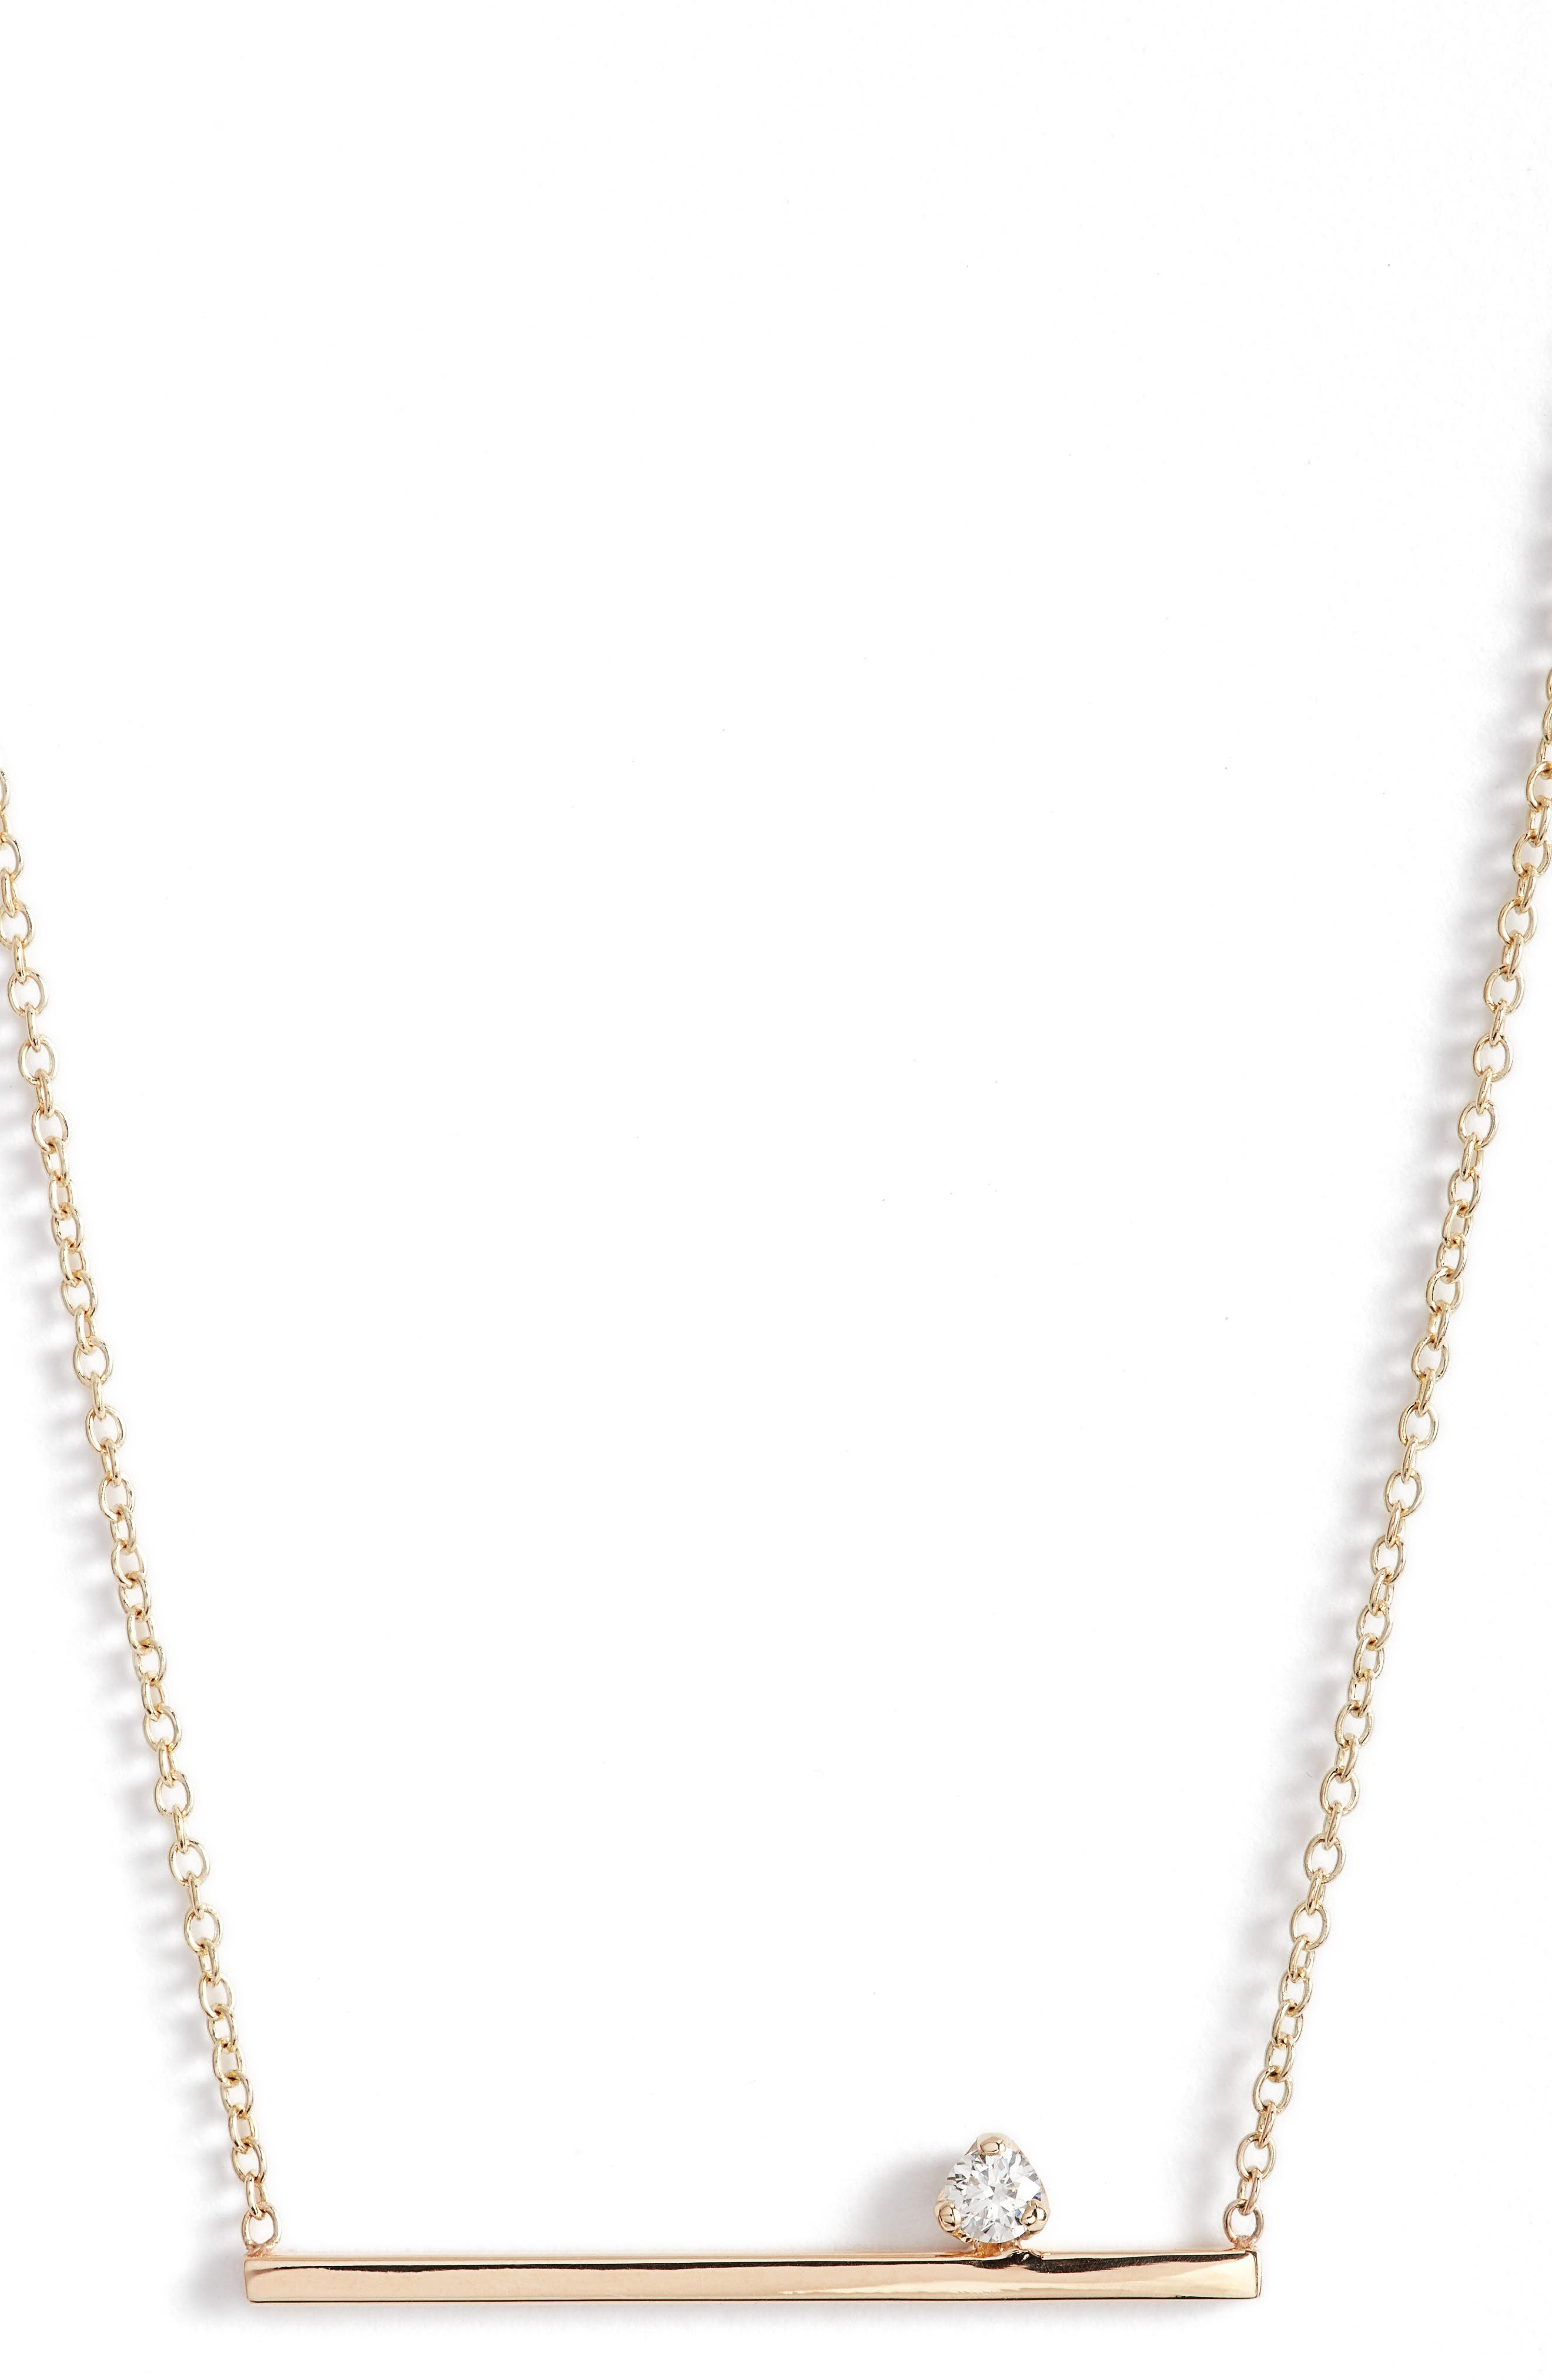 Floating Diamond Pendant Necklace,                             Alternate thumbnail 2, color,                             Yellow Gold